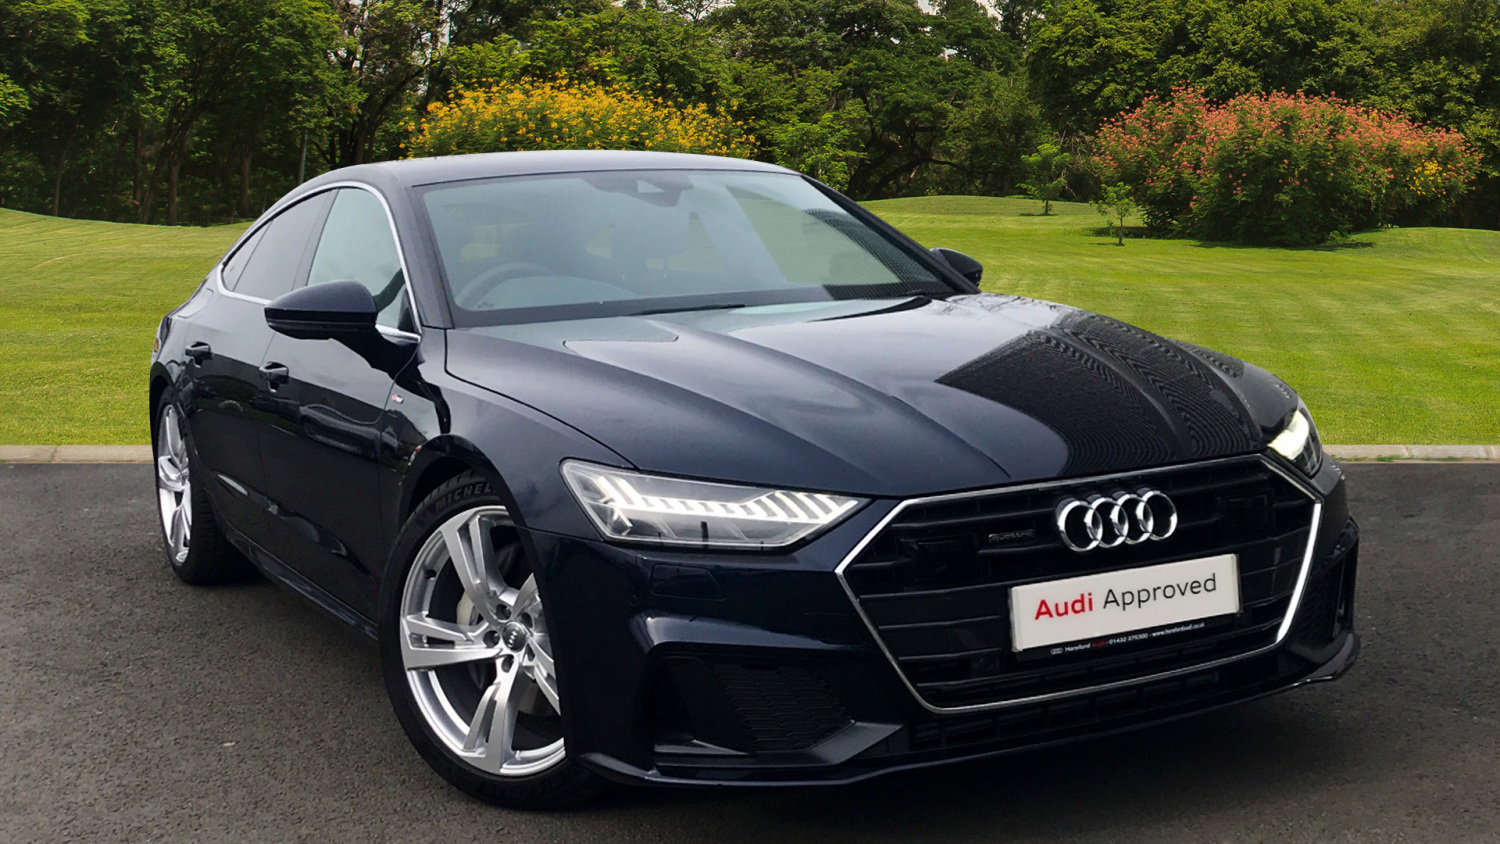 used audi a7 50 tdi quattro s line 5dr tip auto diesel hatchback for sale hereford audi. Black Bedroom Furniture Sets. Home Design Ideas